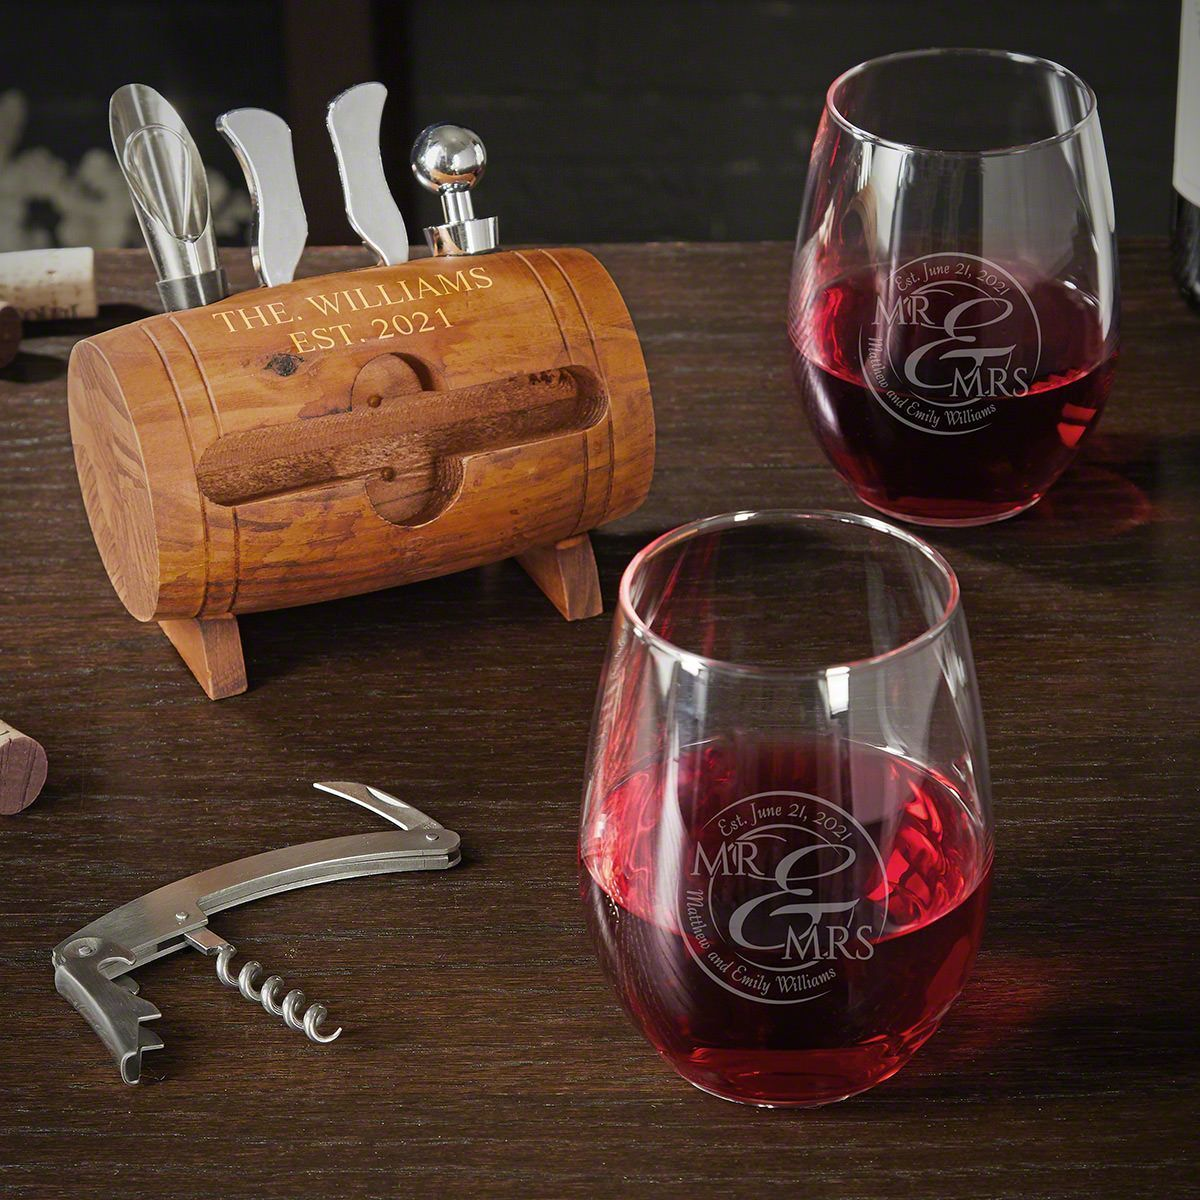 Best Wine Openers 2021 This stunning wine gift set is the perfect gift for any couple